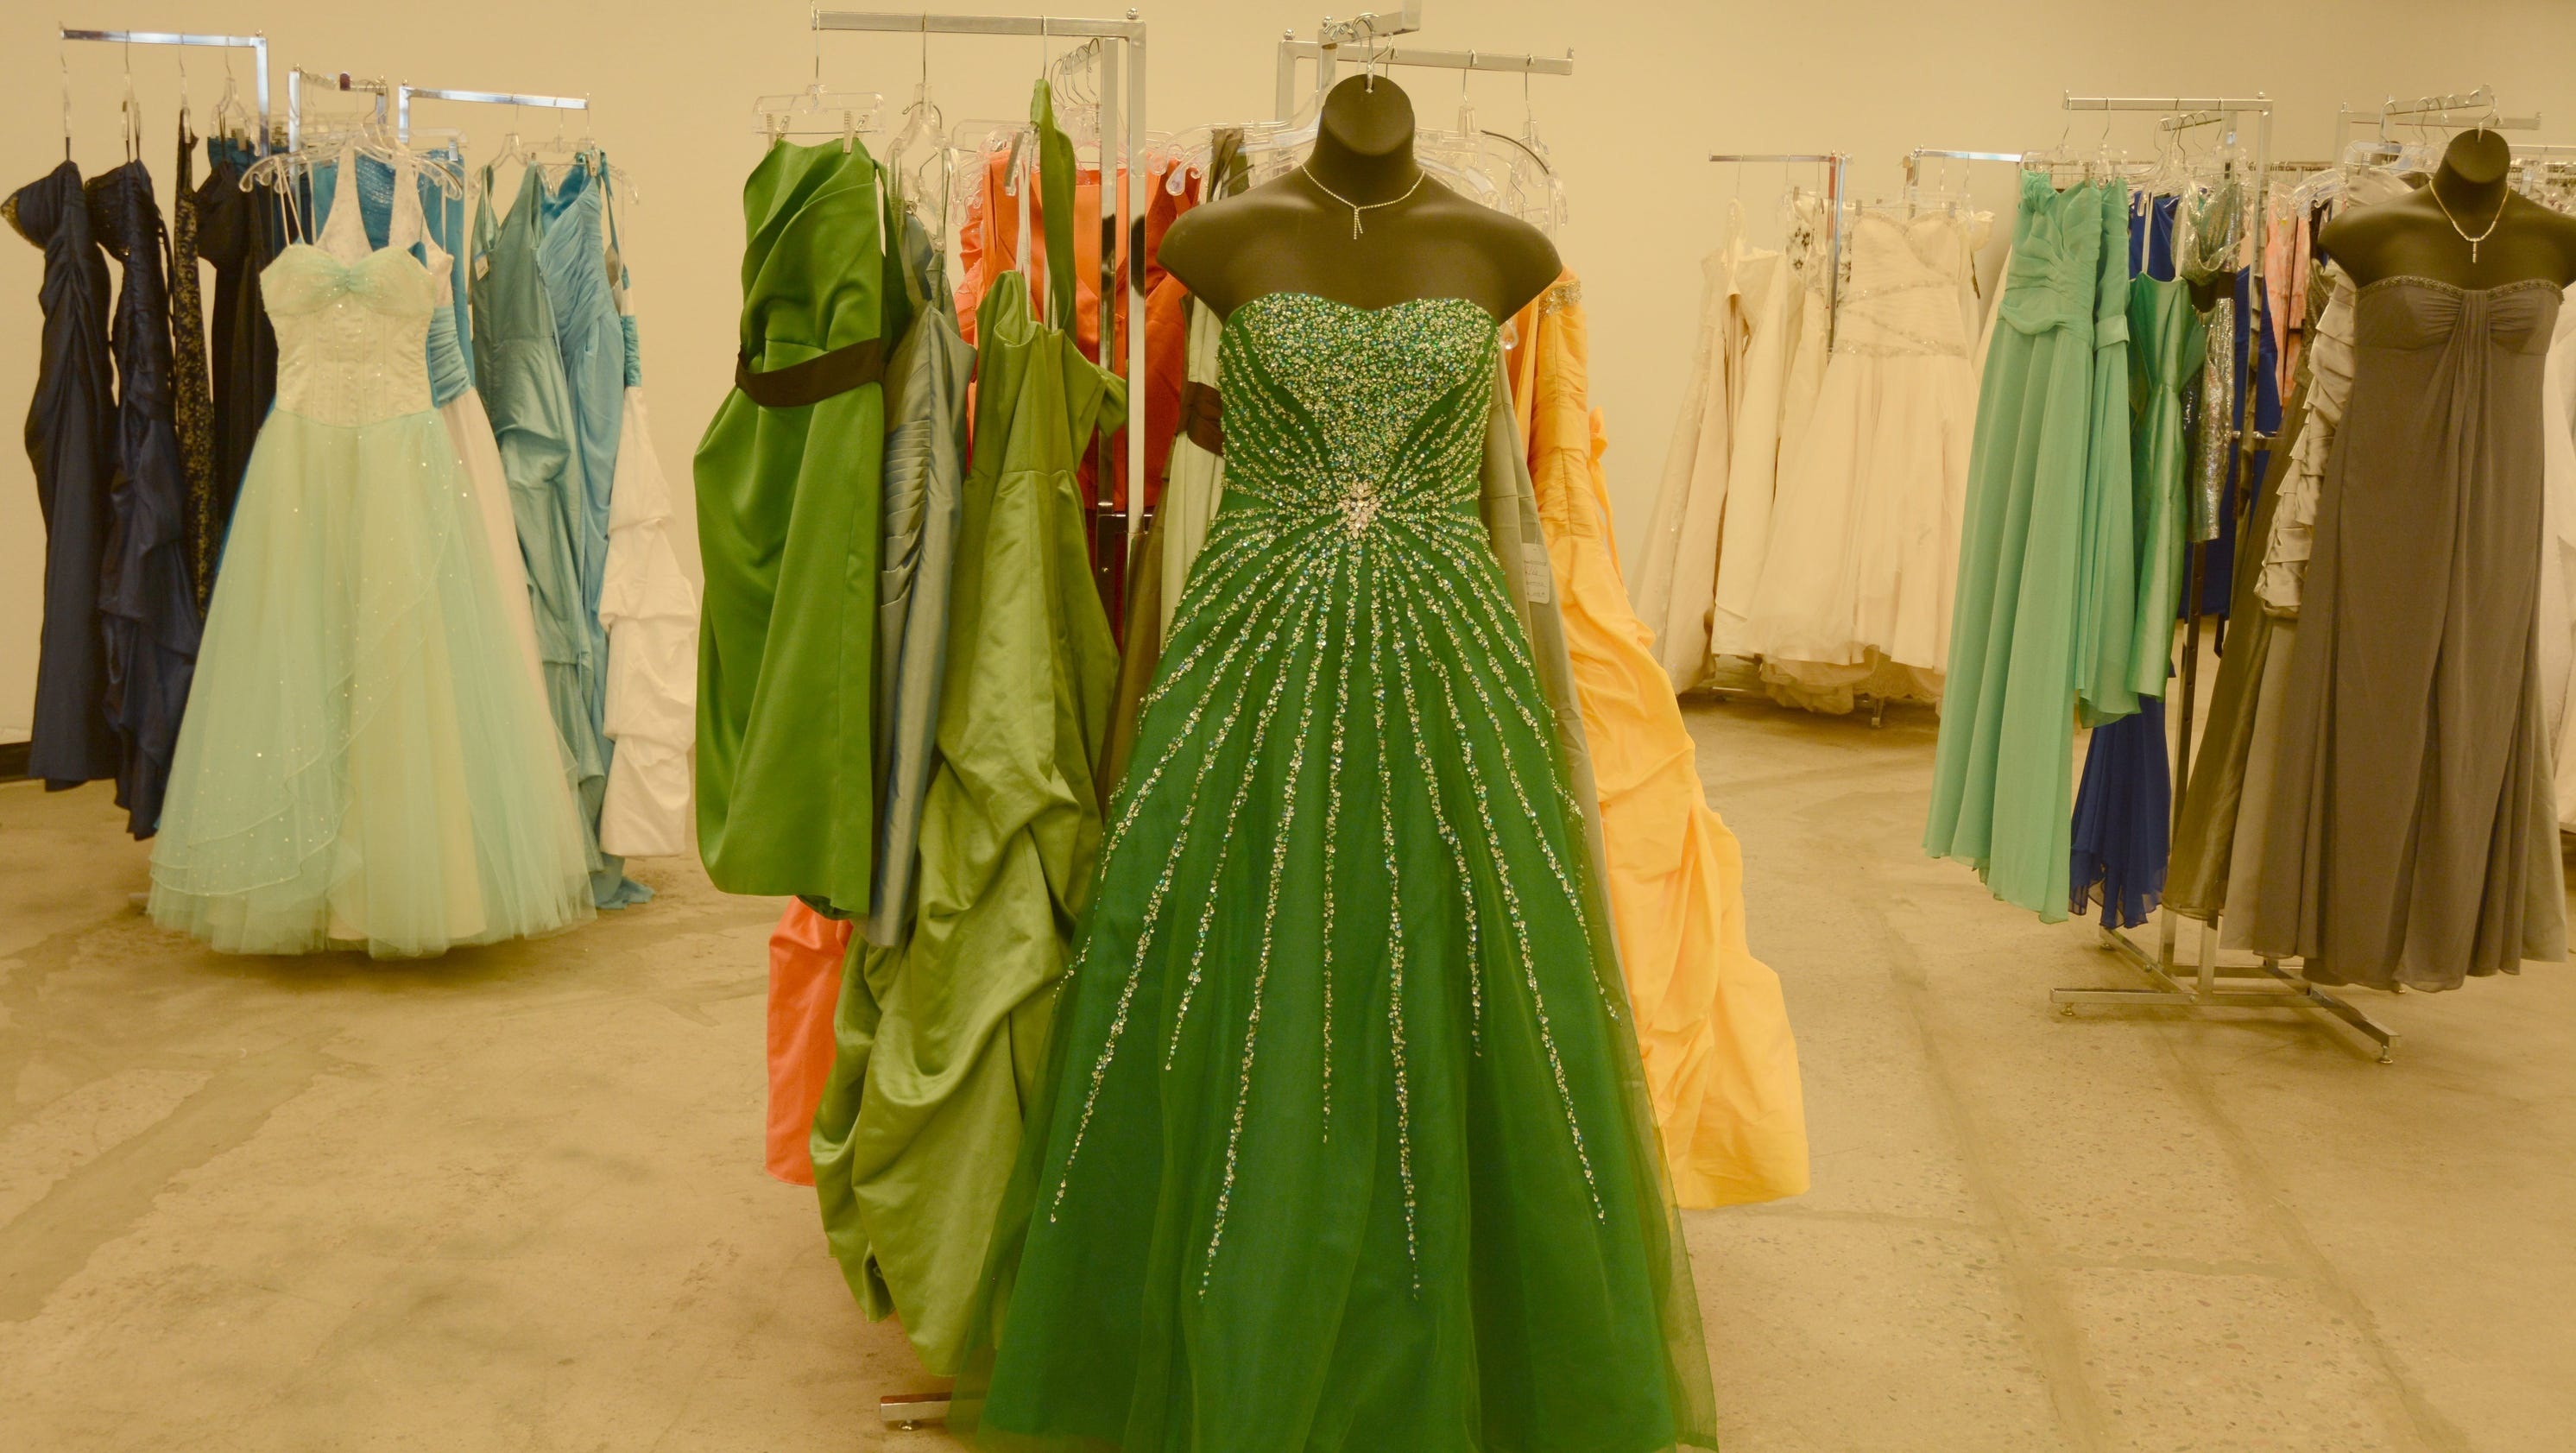 Getting married? Brides score bargains at Mesa Goodwill